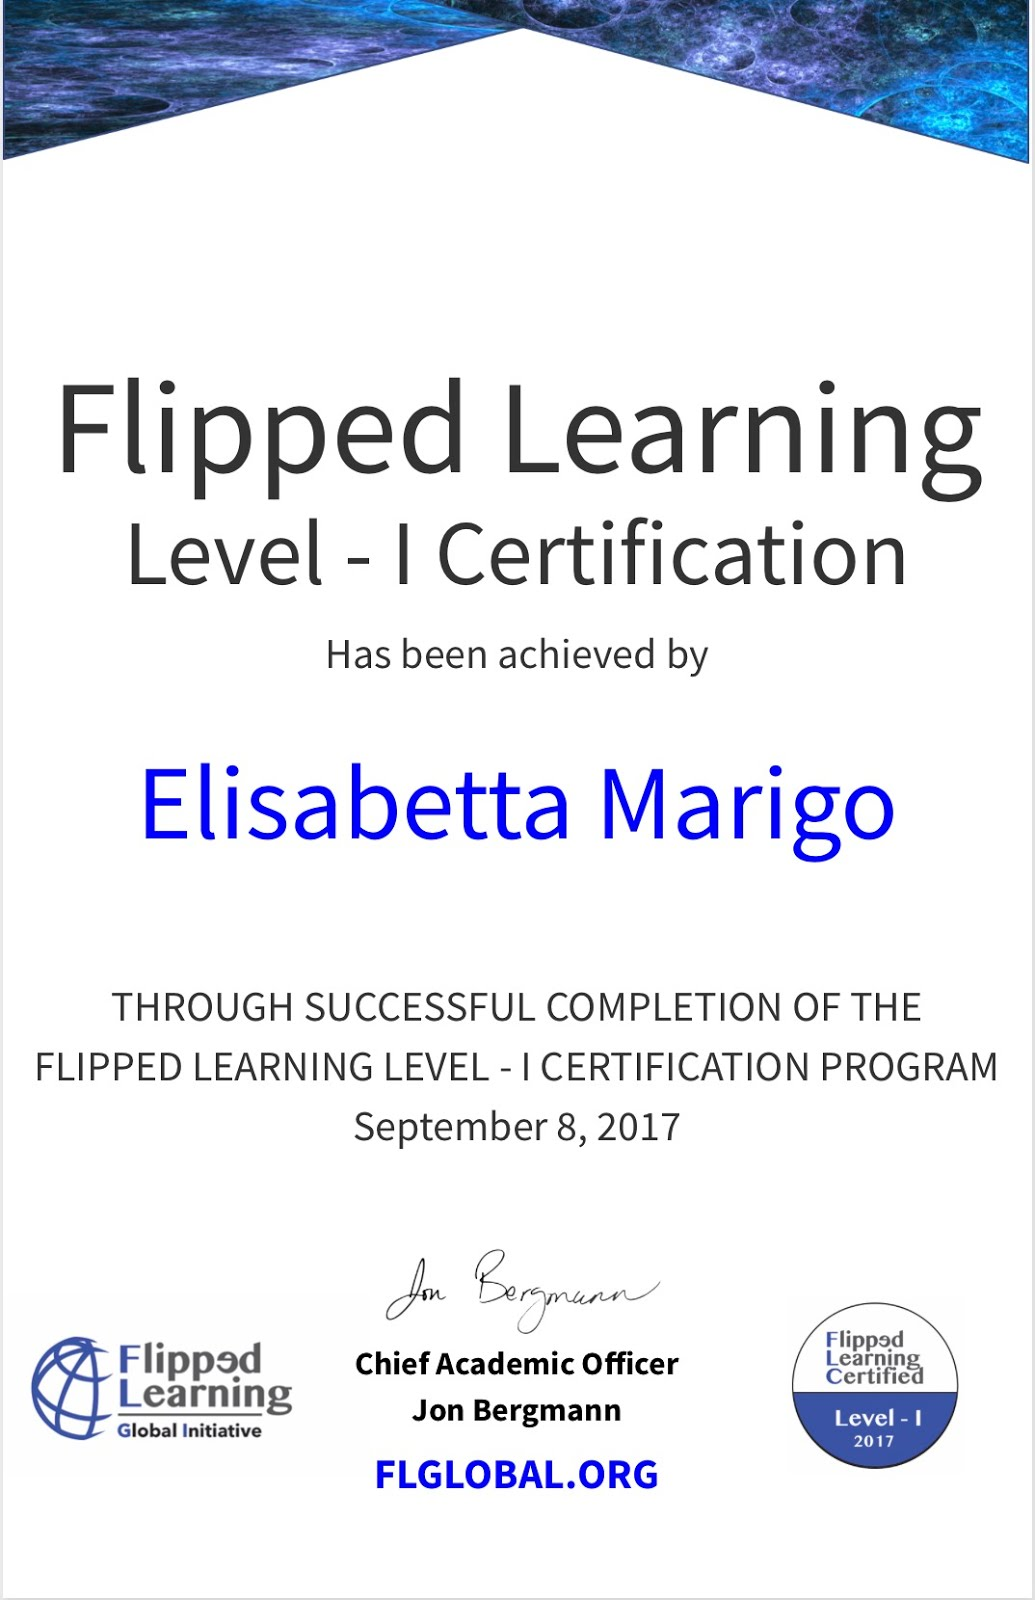 FLIPPED LEARNING CERTIFICATION LEVEL I